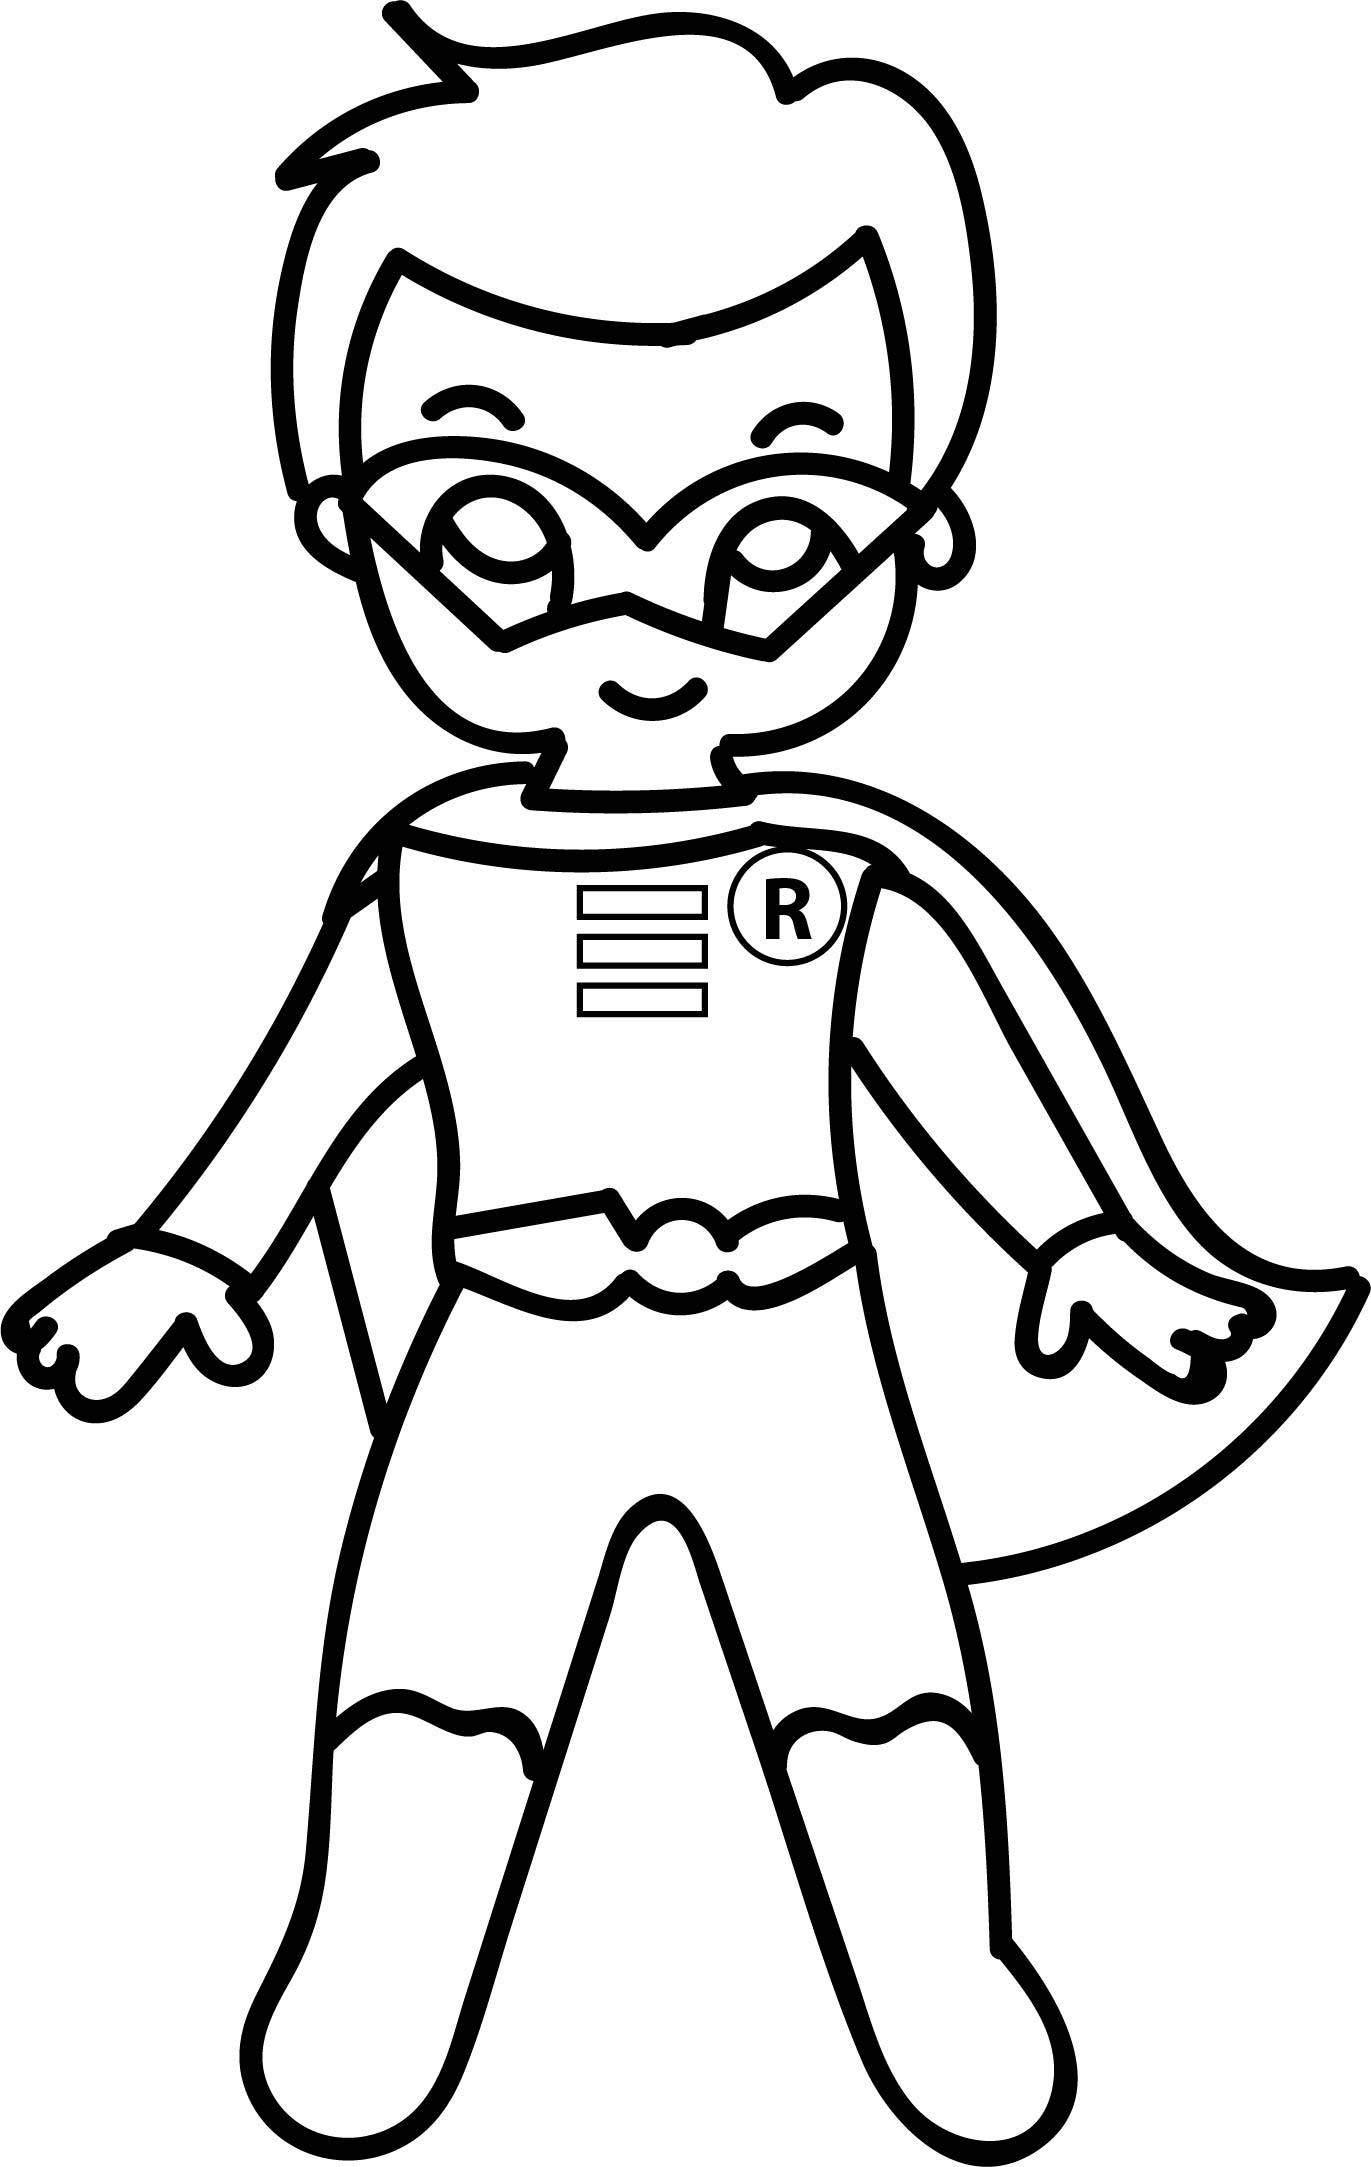 1371x2167 Appealing Superhero Costume Coloring Pages Hellokidscom Pic